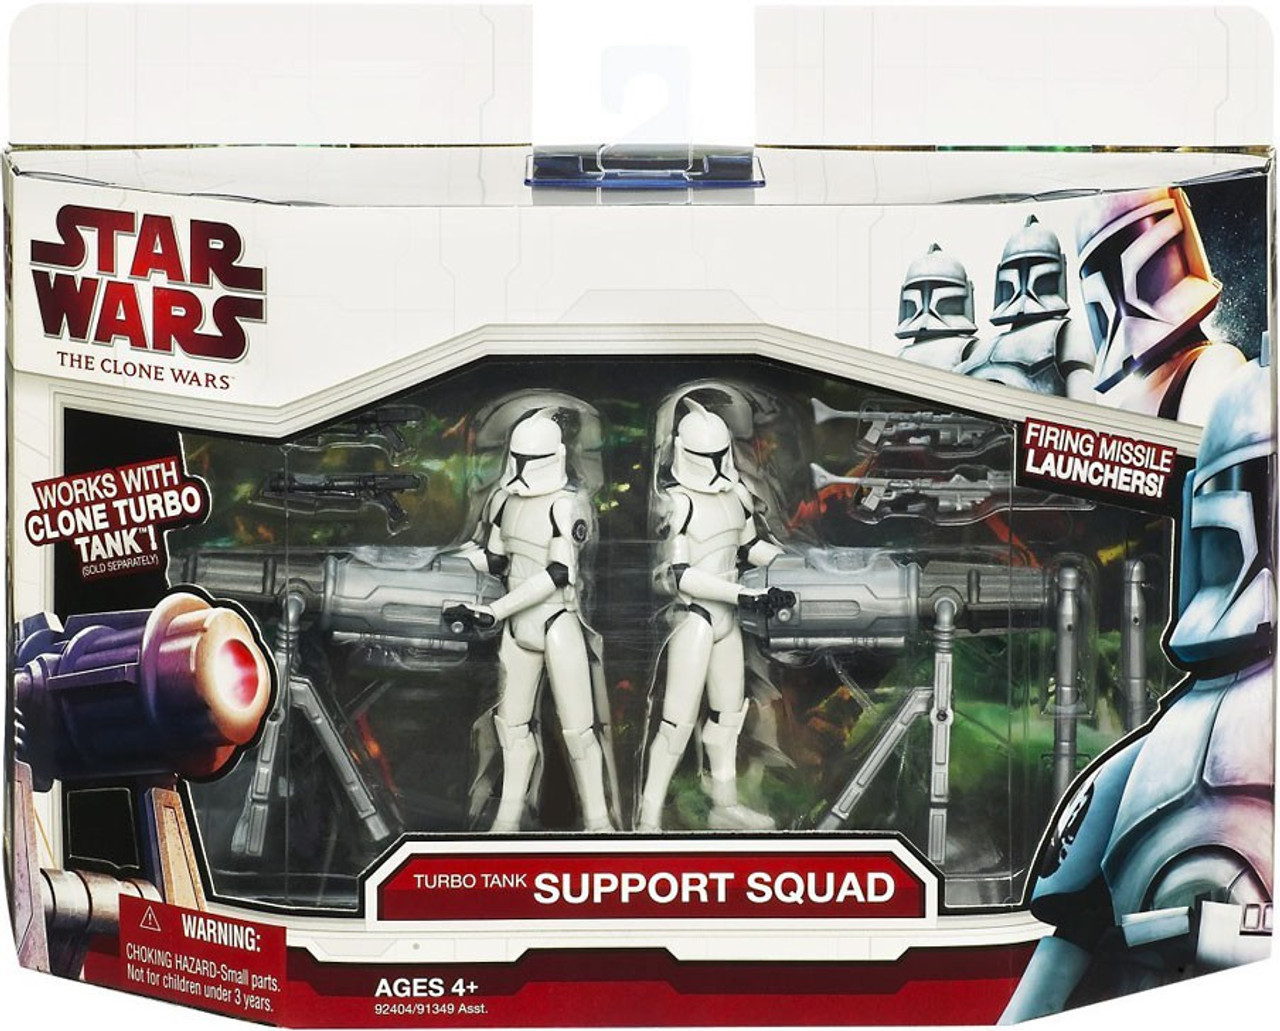 Star Wars The Clone Wars Vehicles & Action Figure Sets 2009 Turbo Tank Support Squad Action Figure Set